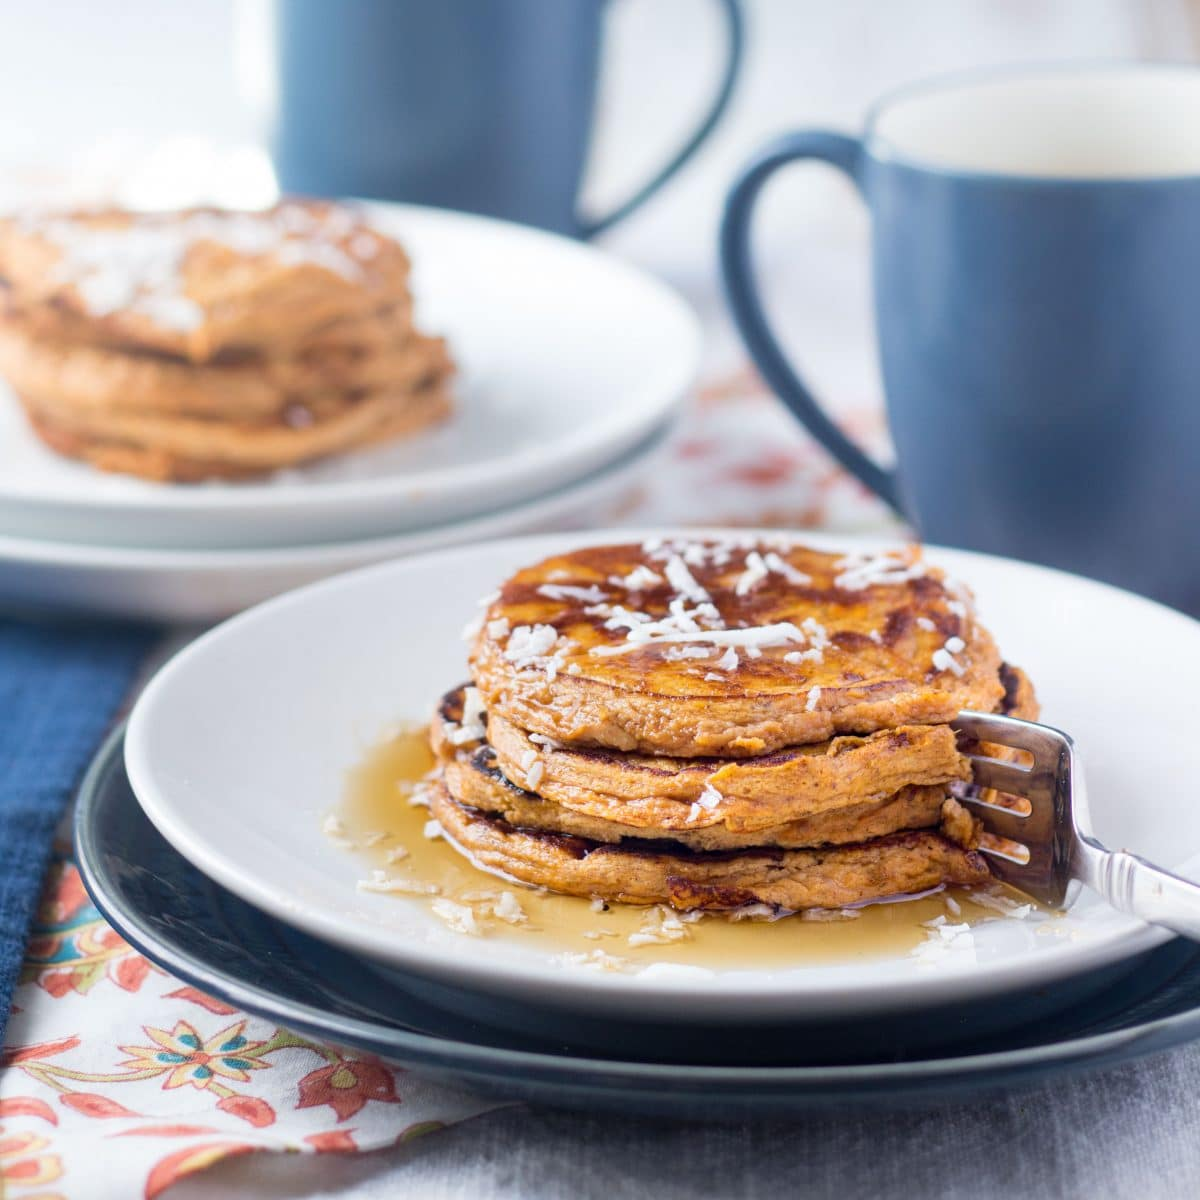 sweet-potato-pancakes-image